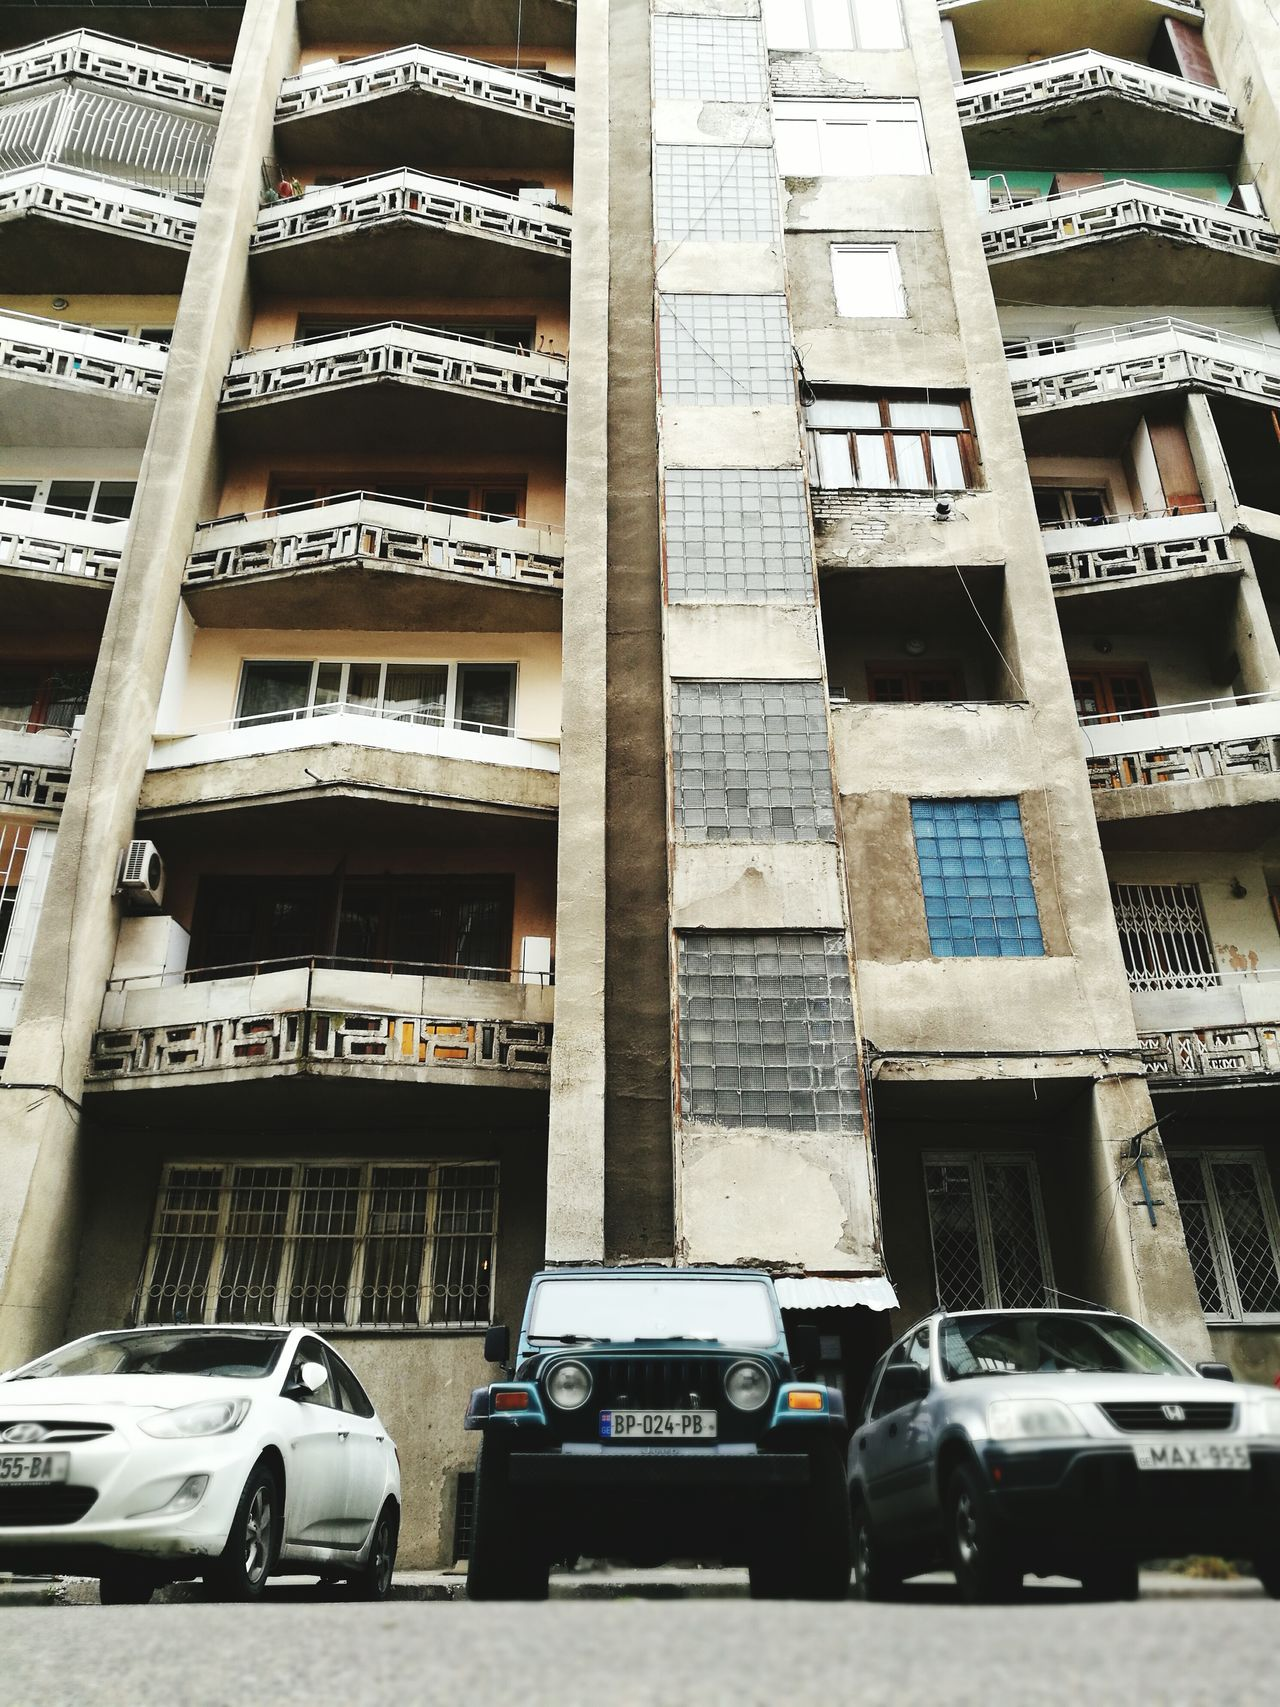 Tbilisi Georgia Architecture Block Housing Soviet Era Panel Balcony Car Architecture Building Exterior Built Structure City No People First Eyeem Photo